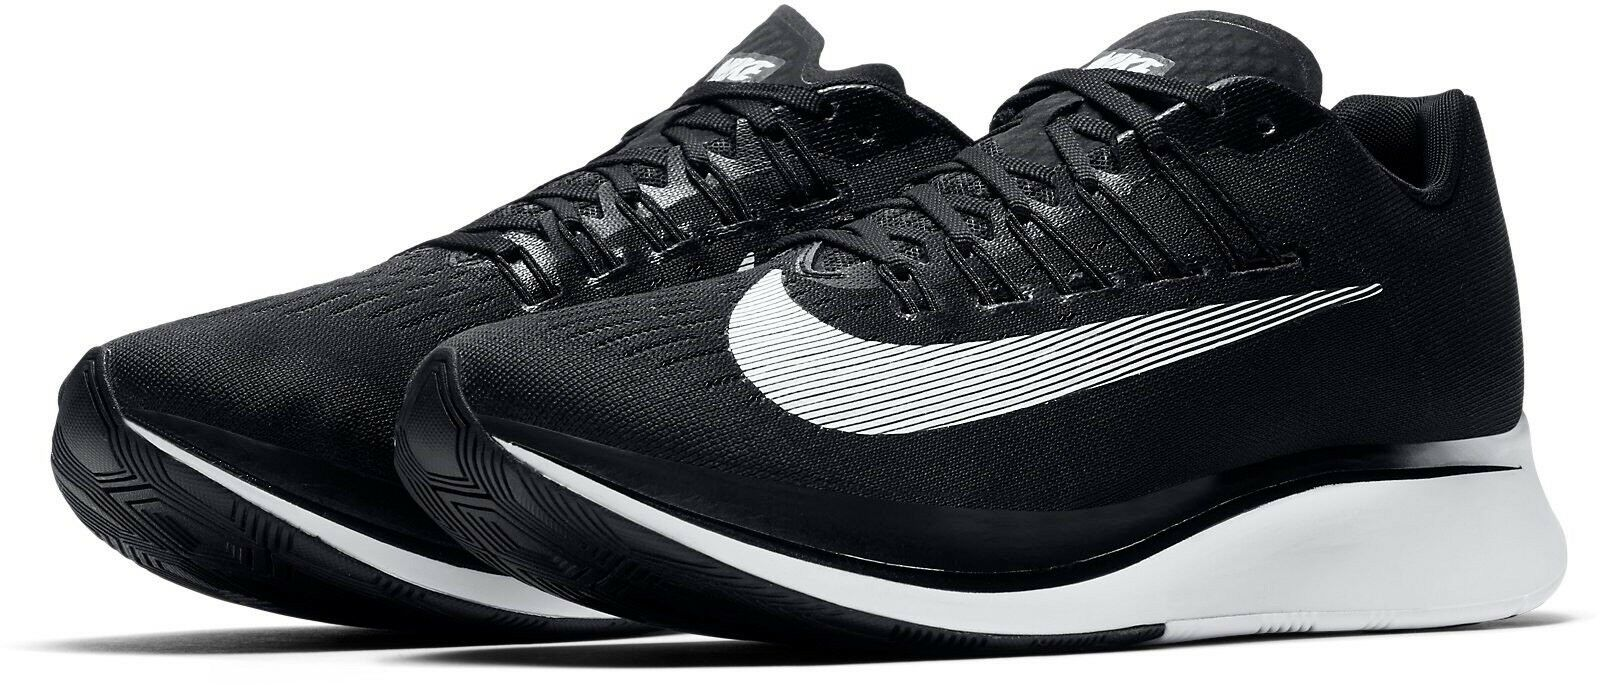 Brand New WMNS Nike Zoom Fly 897821-001 Black White Size 5